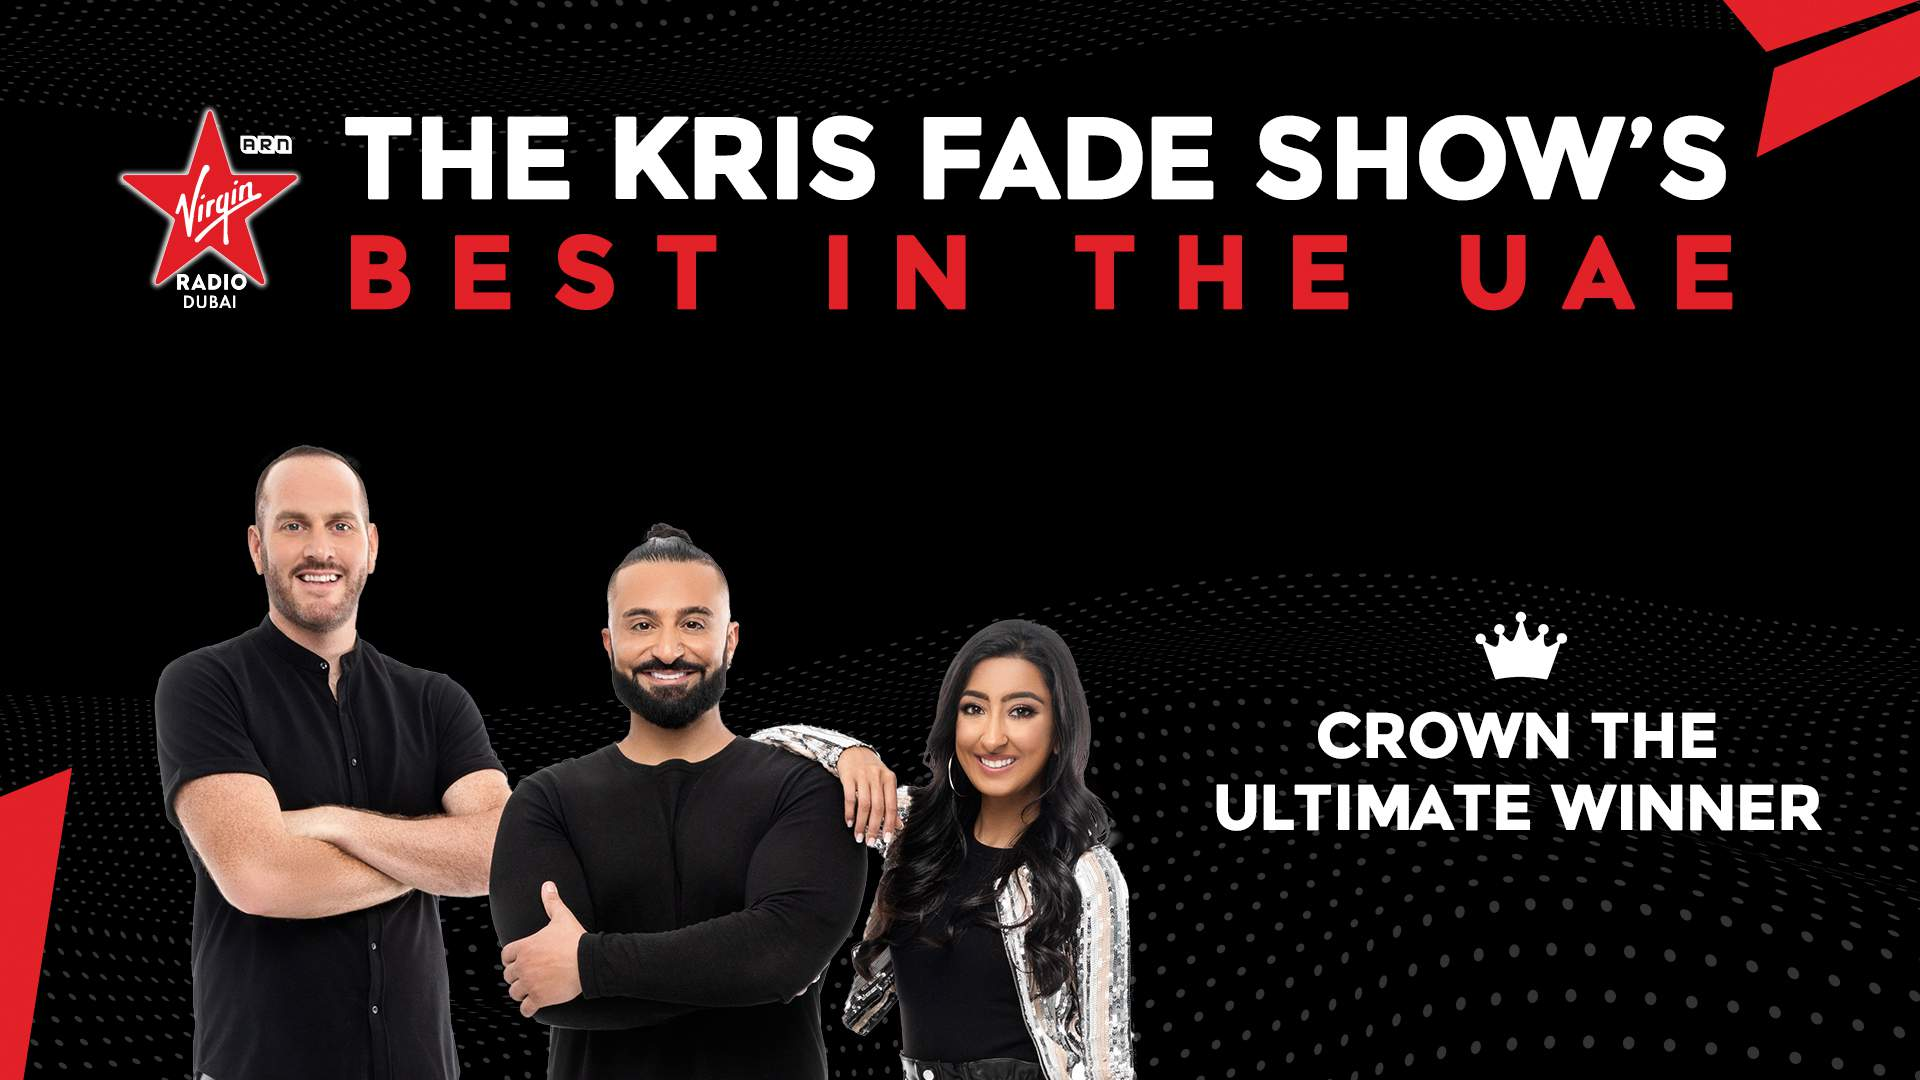 The Kris Fade Show's Best In The UAE